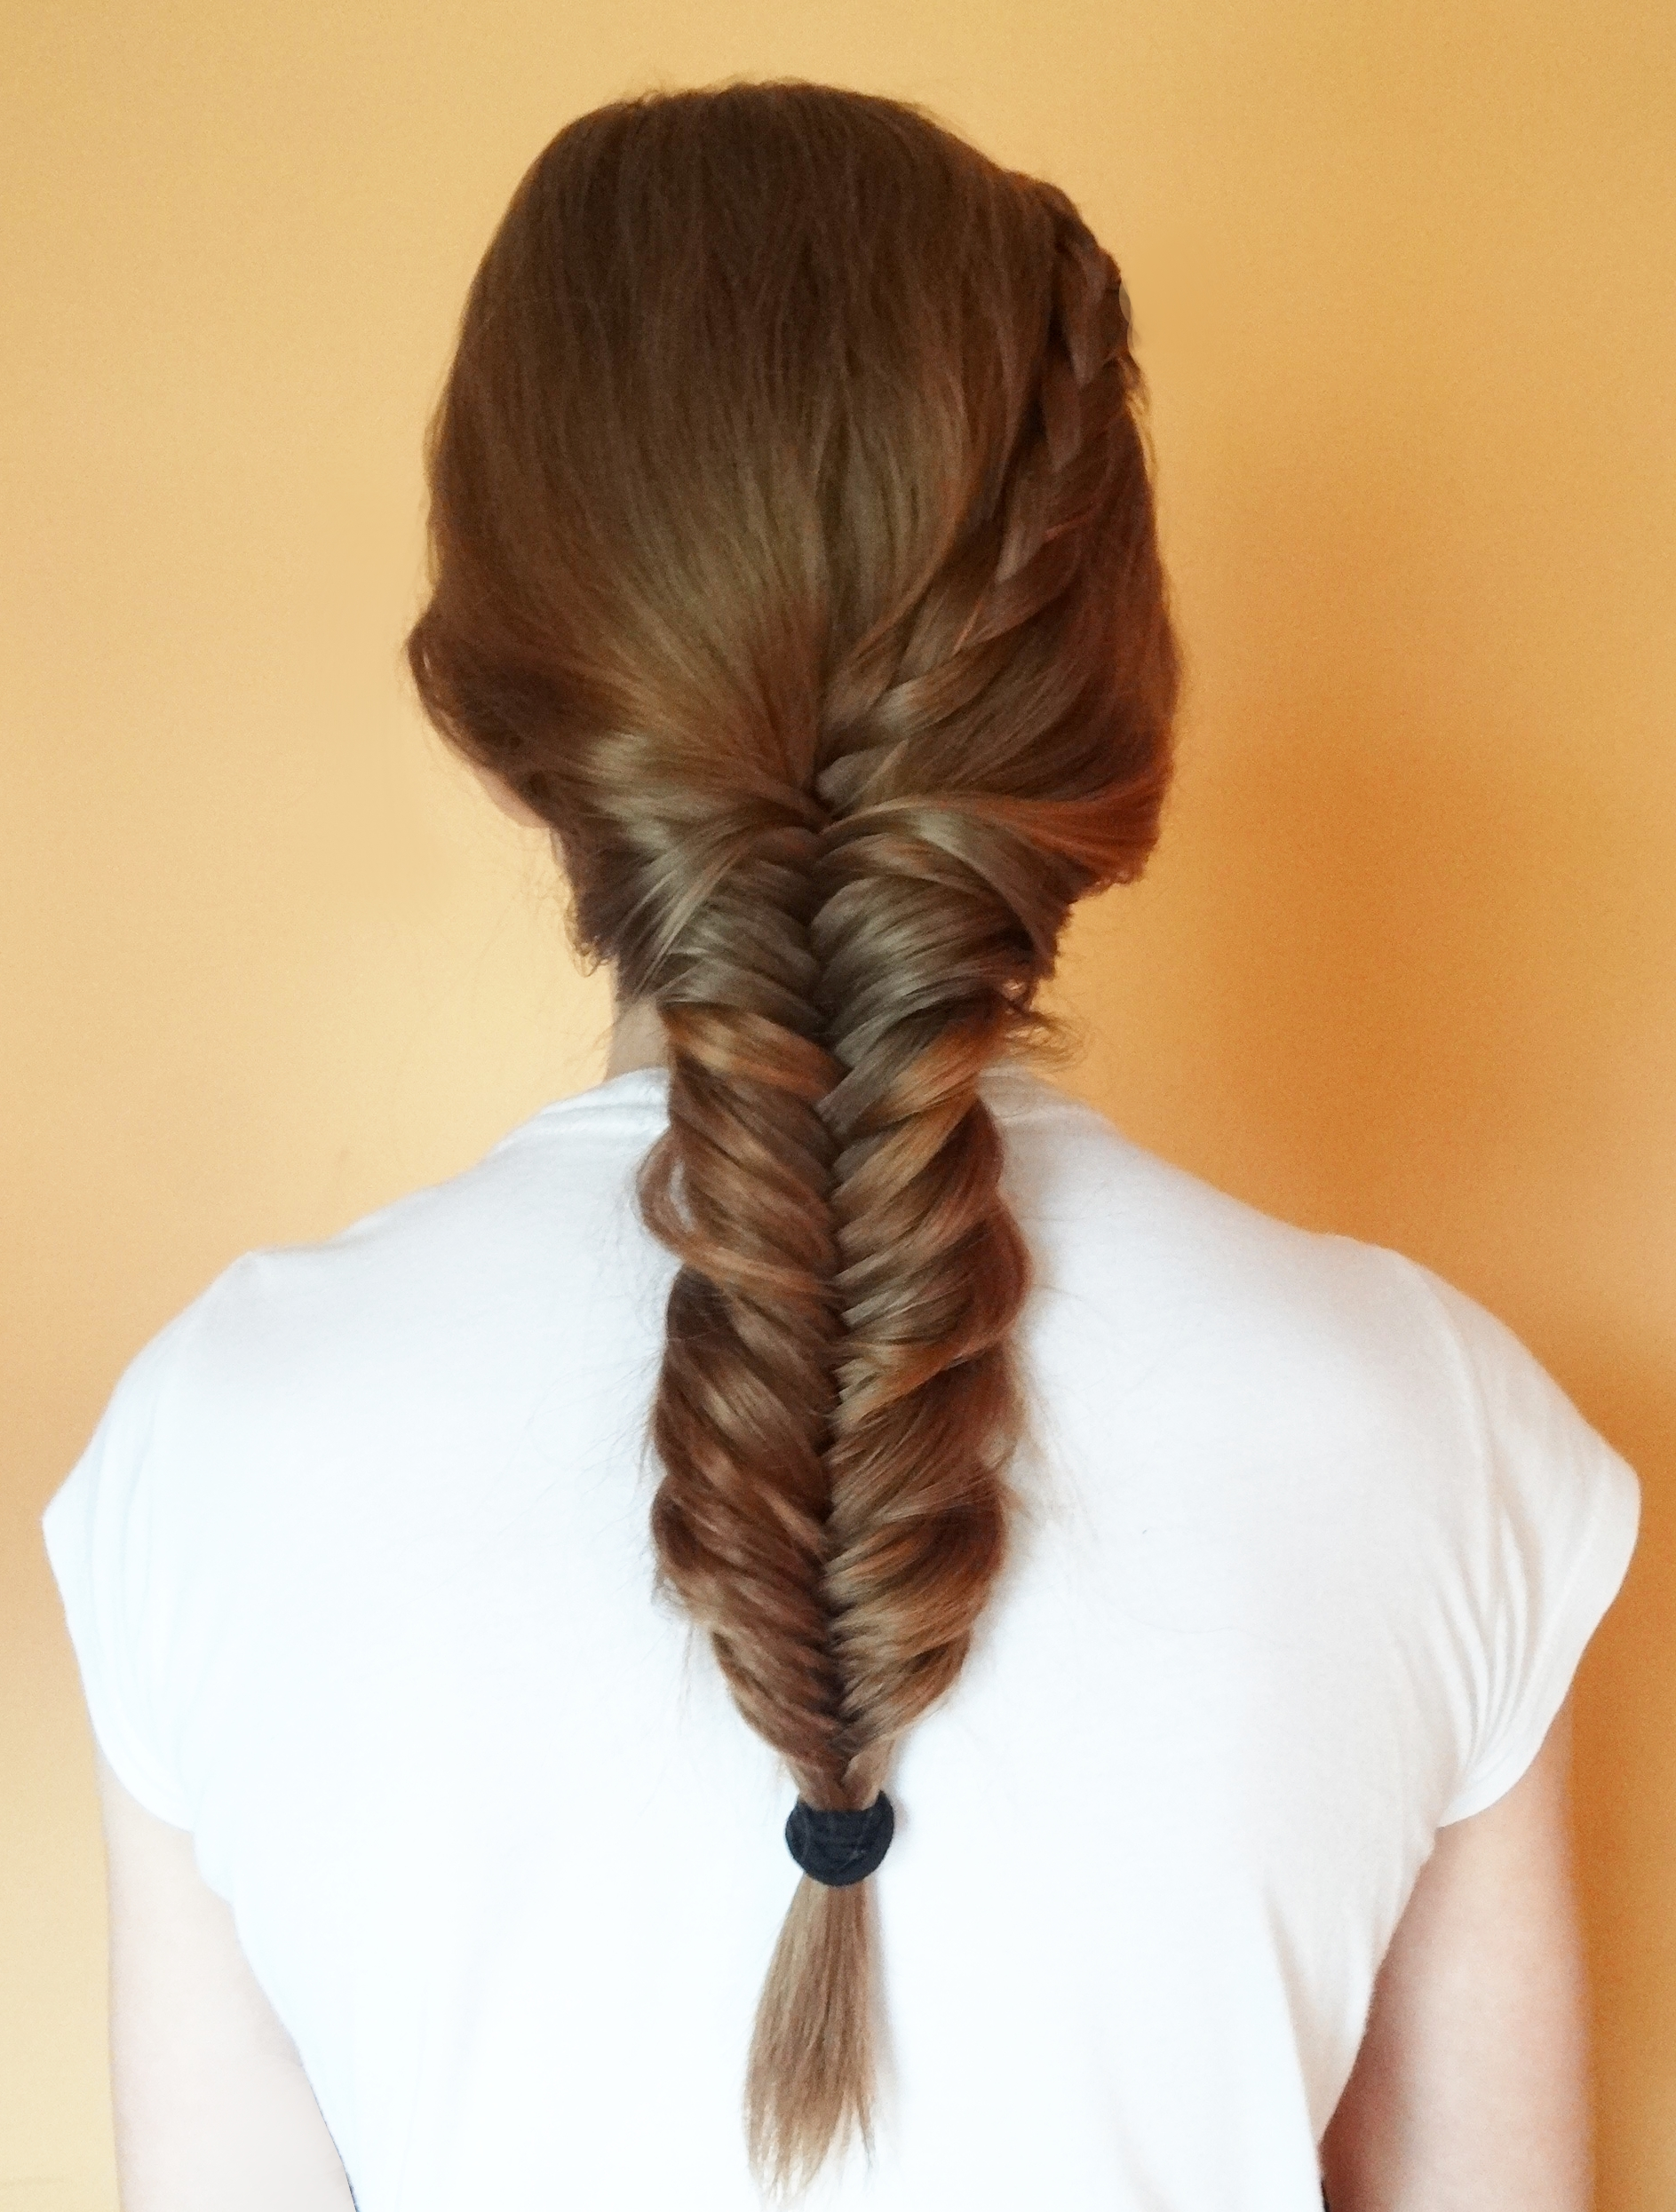 File:Fishtail BraidJPG - Wikimedia Commons - Fishbone Braid Hairstyles